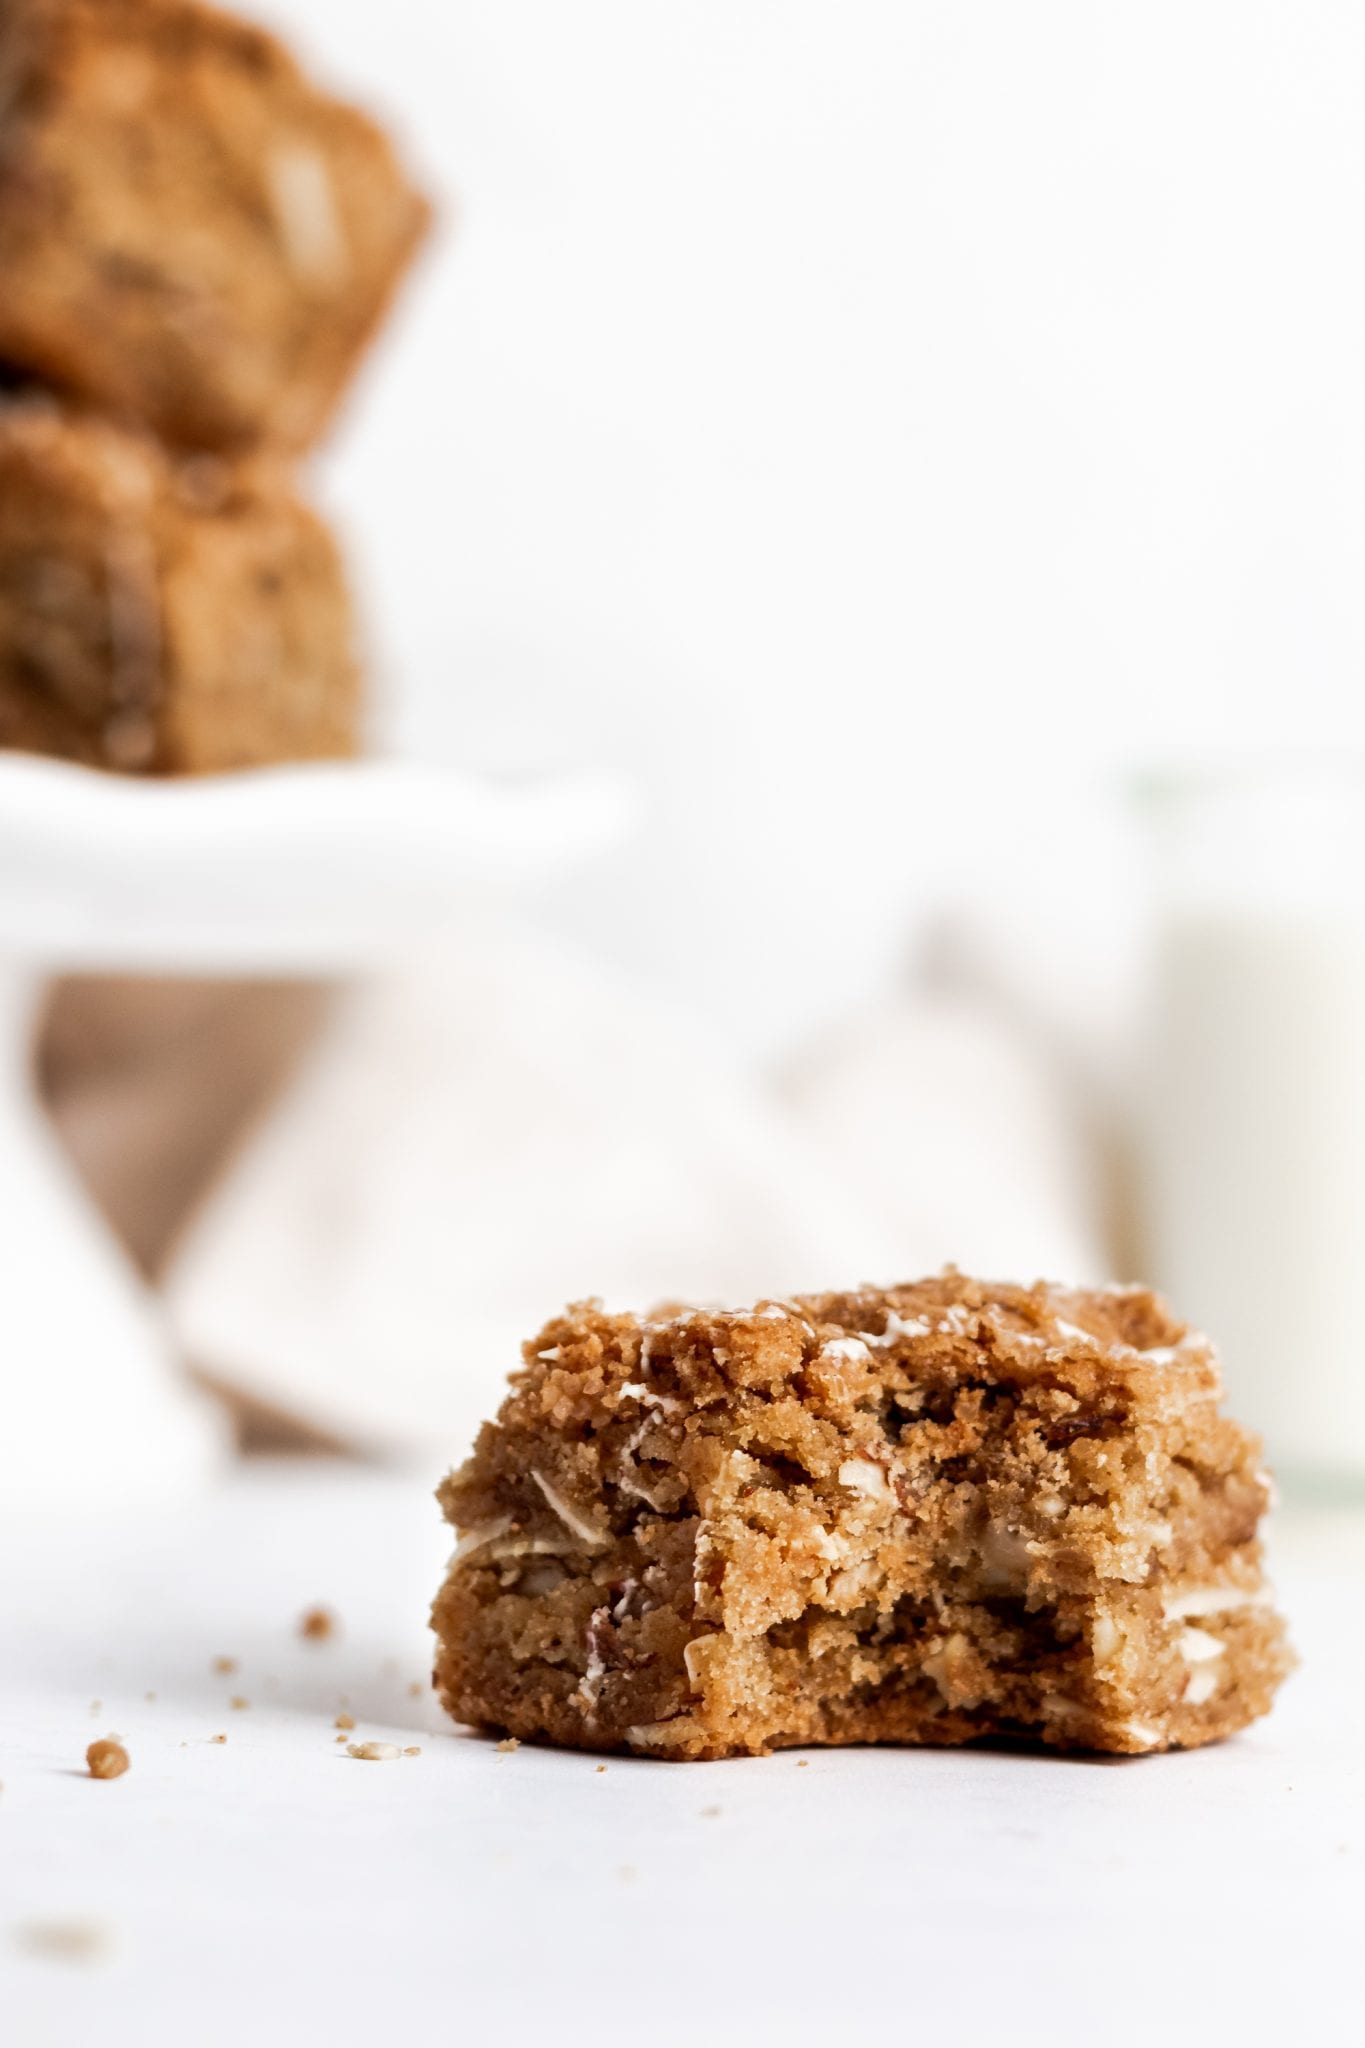 close up of caramelized white chocolate and almond blondie on a white background with a bite taken out.